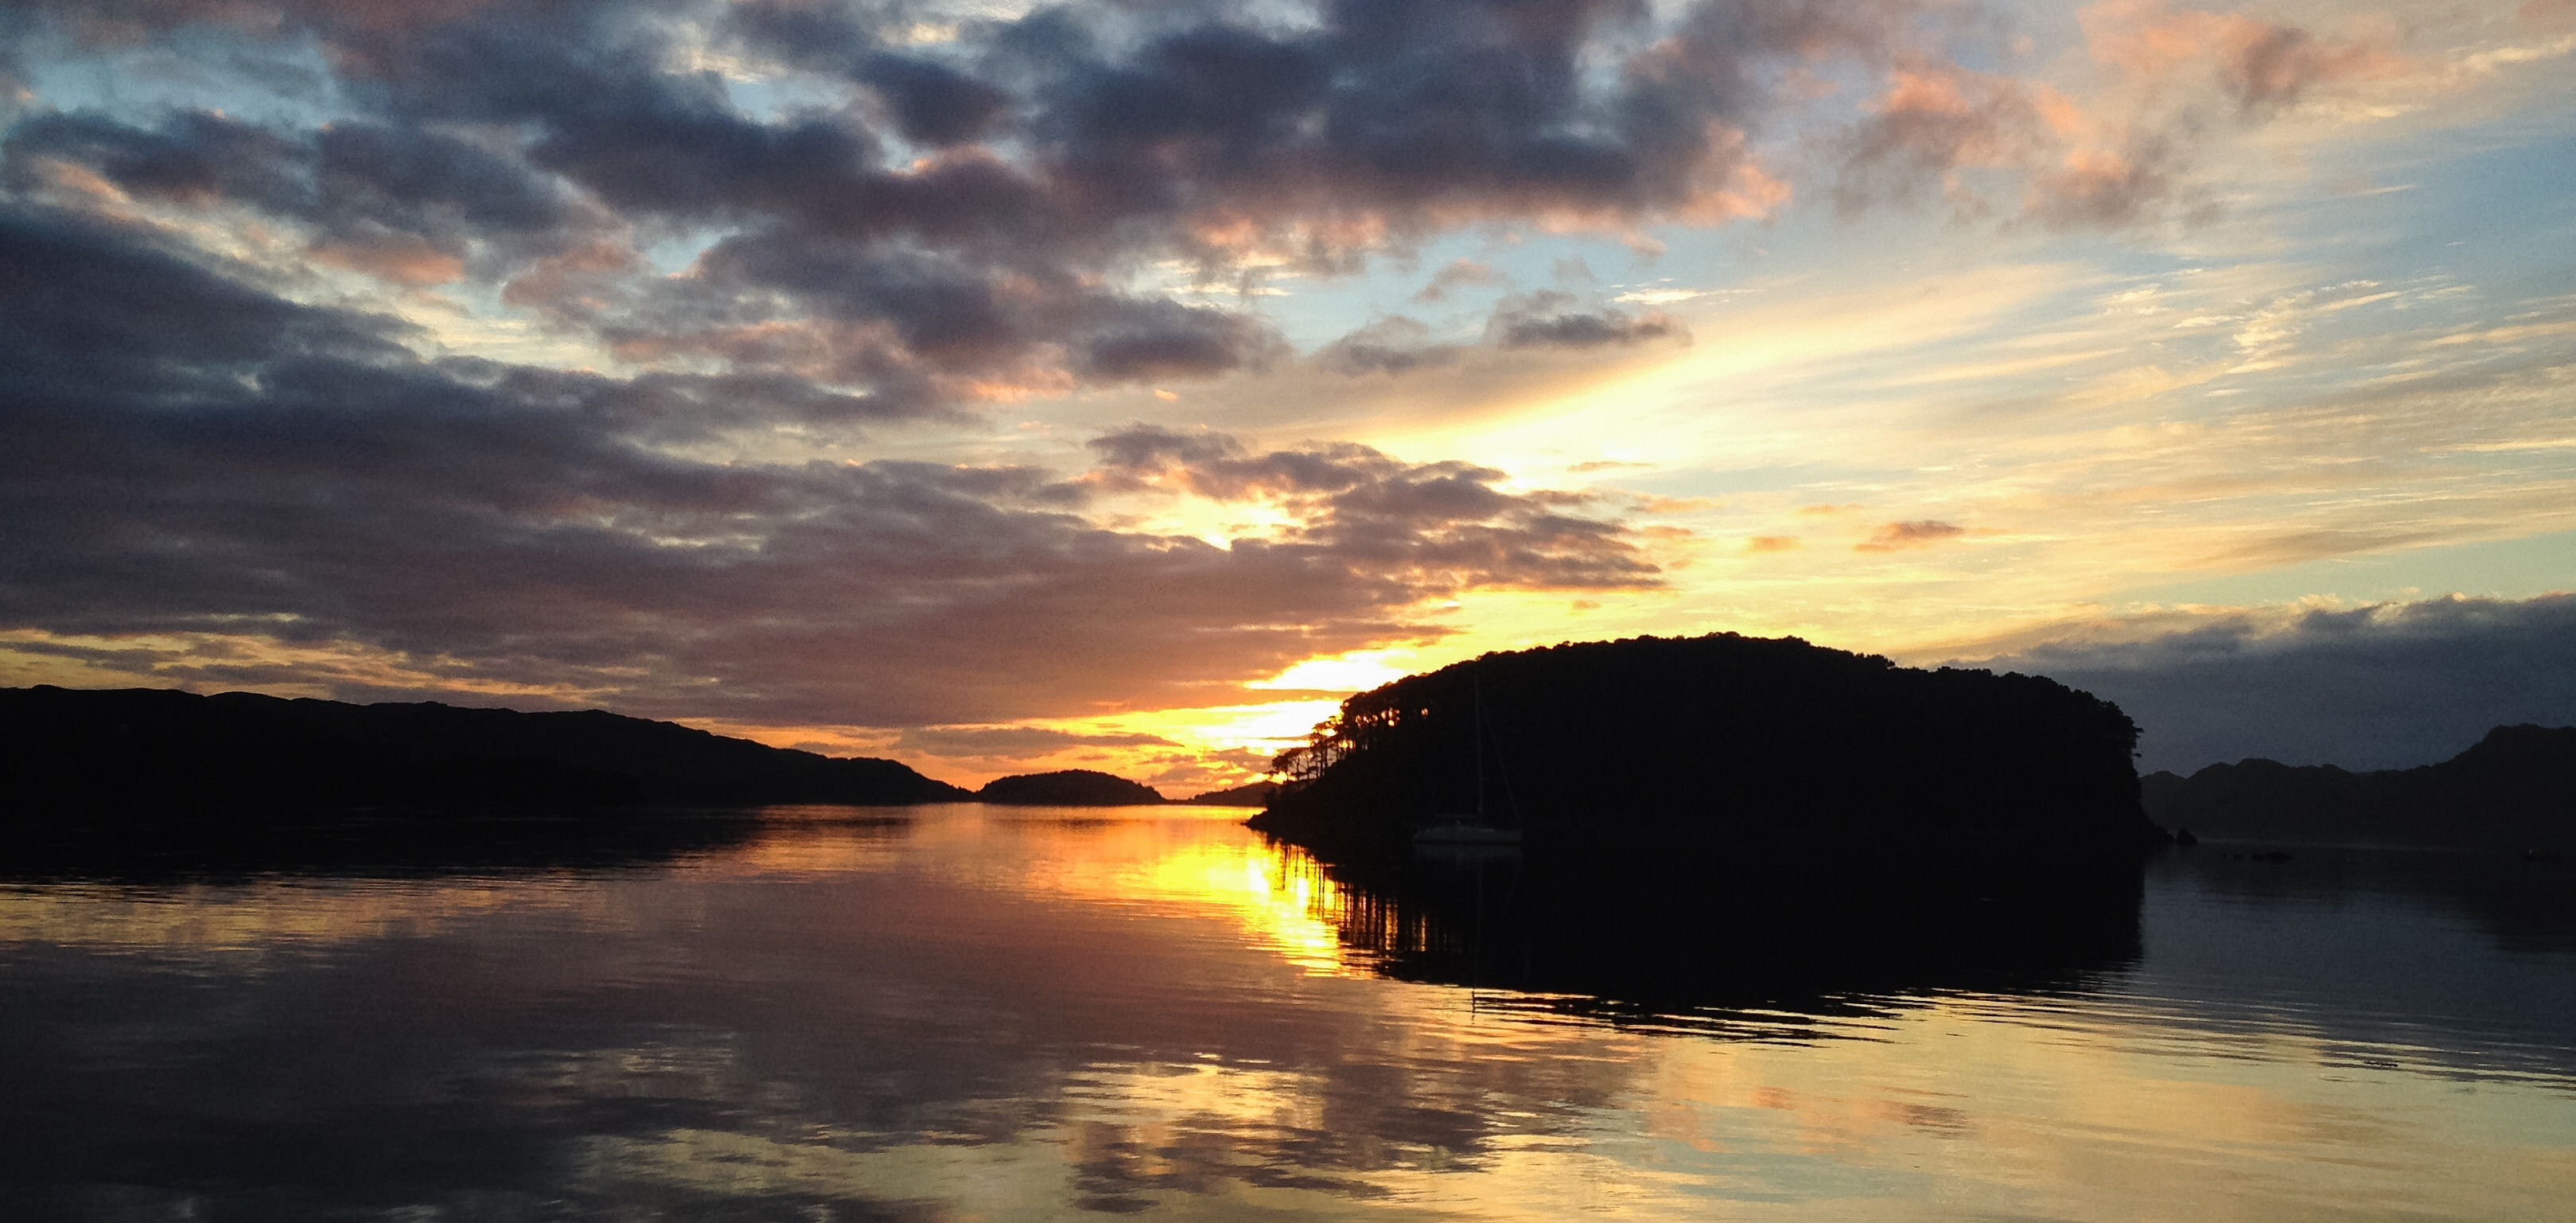 Shieldaig Island at sunset